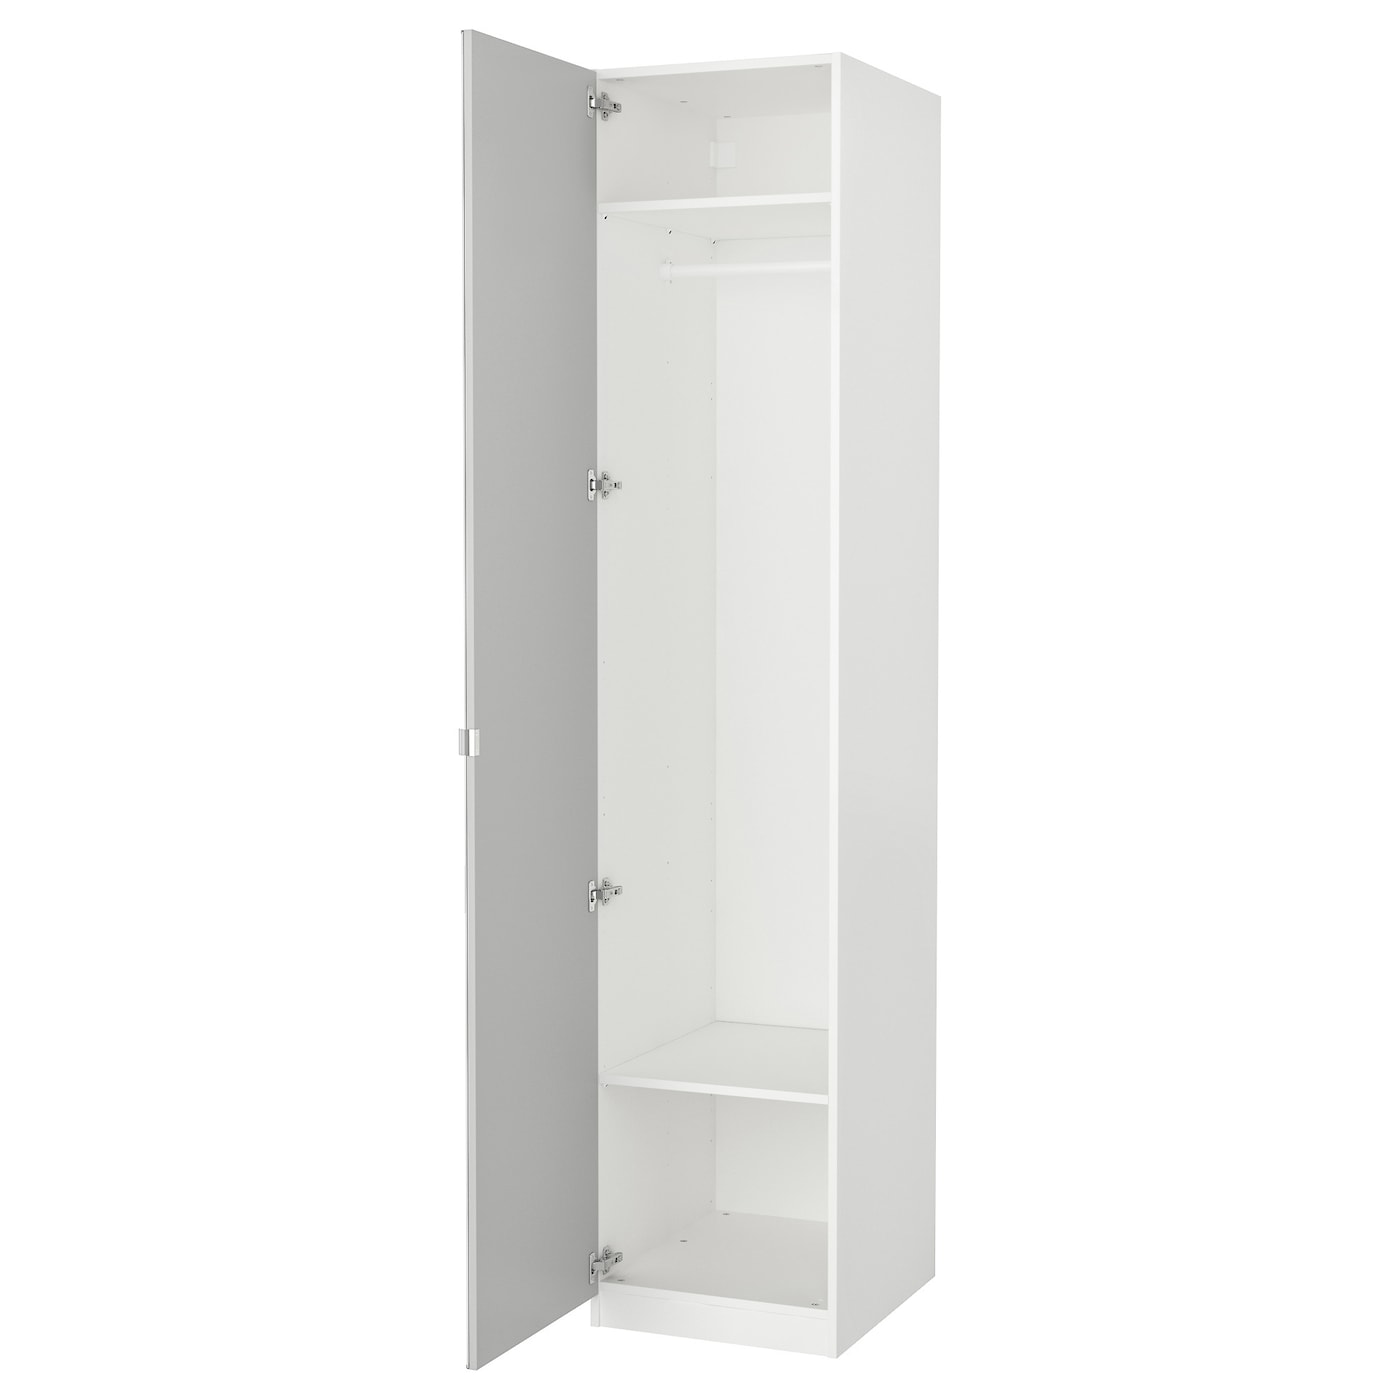 pax wardrobe white vikedal mirror glass 50 x 60 x 236 cm ikea. Black Bedroom Furniture Sets. Home Design Ideas